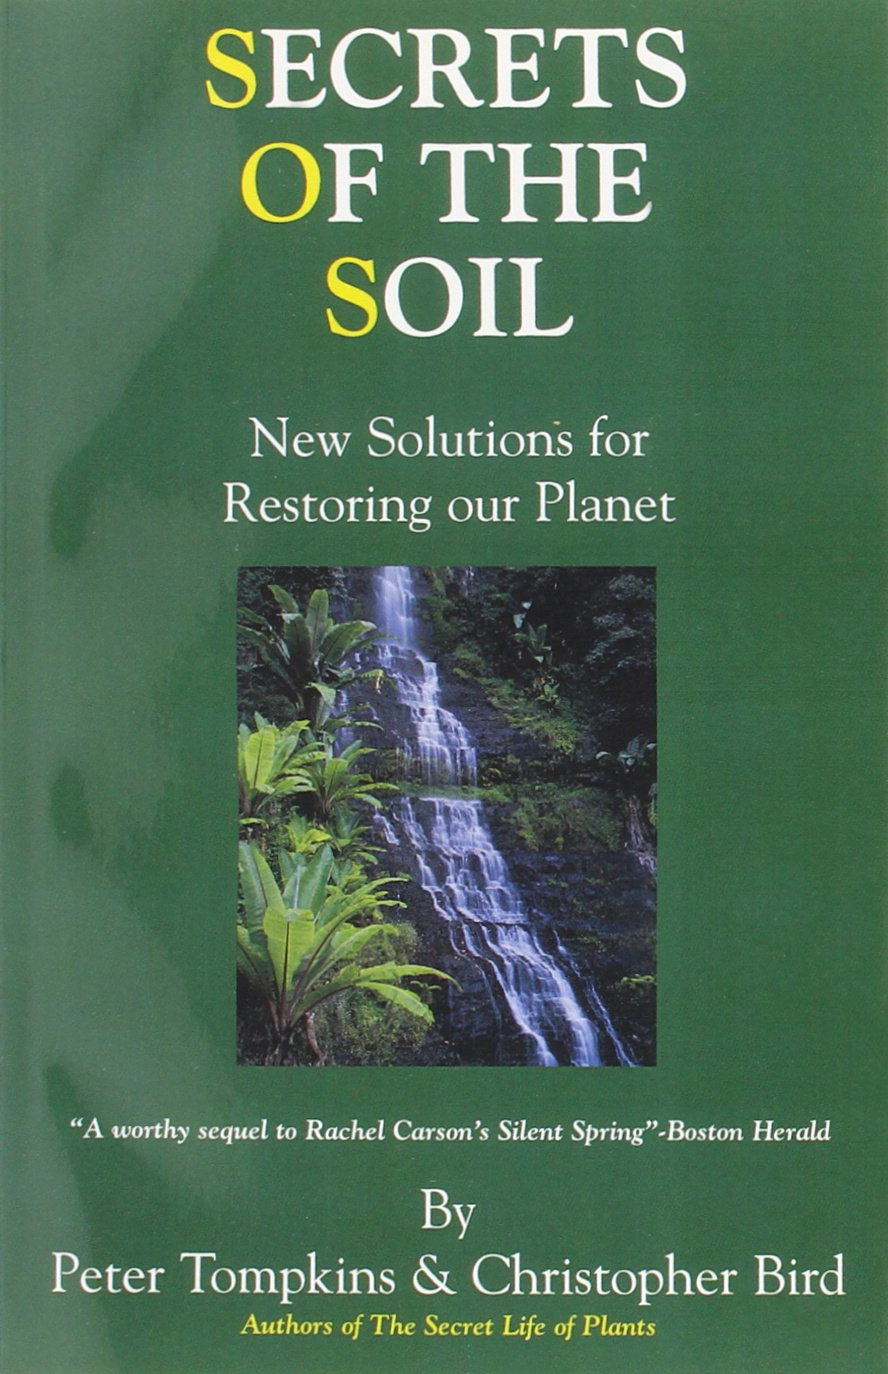 "secrets of the soil: new solutions for restoring our planet - By Peter Tomkins and Christopher BirdBACK IN PRINT! This is a thoroughly researched book that will astonish you in more ways than one. It is HIGHLY educational, but you won't find any of this valuable information in a standard textbook on soil science, gardening, or whatever.Some of it might seem a little far-fetched or at least put a little pressure on preconceived beliefs, but the nice thing is, Tomkins & Bird have found a way to present some rather amazing concepts in a take-it-leave it sort of way, because the most assured thing about this book is that you will be inspired with the DESIRE to do SOMETHING no matter how ""small"" the beneficial act!While the factual information about mankind's stupidity and carelessness over the last few decades will break your heart all over again, this book offers many different ways for each of us as individuals to help heal the soil – the very foundation of life under our own two feet – and to help heal OURSELVES in the process."